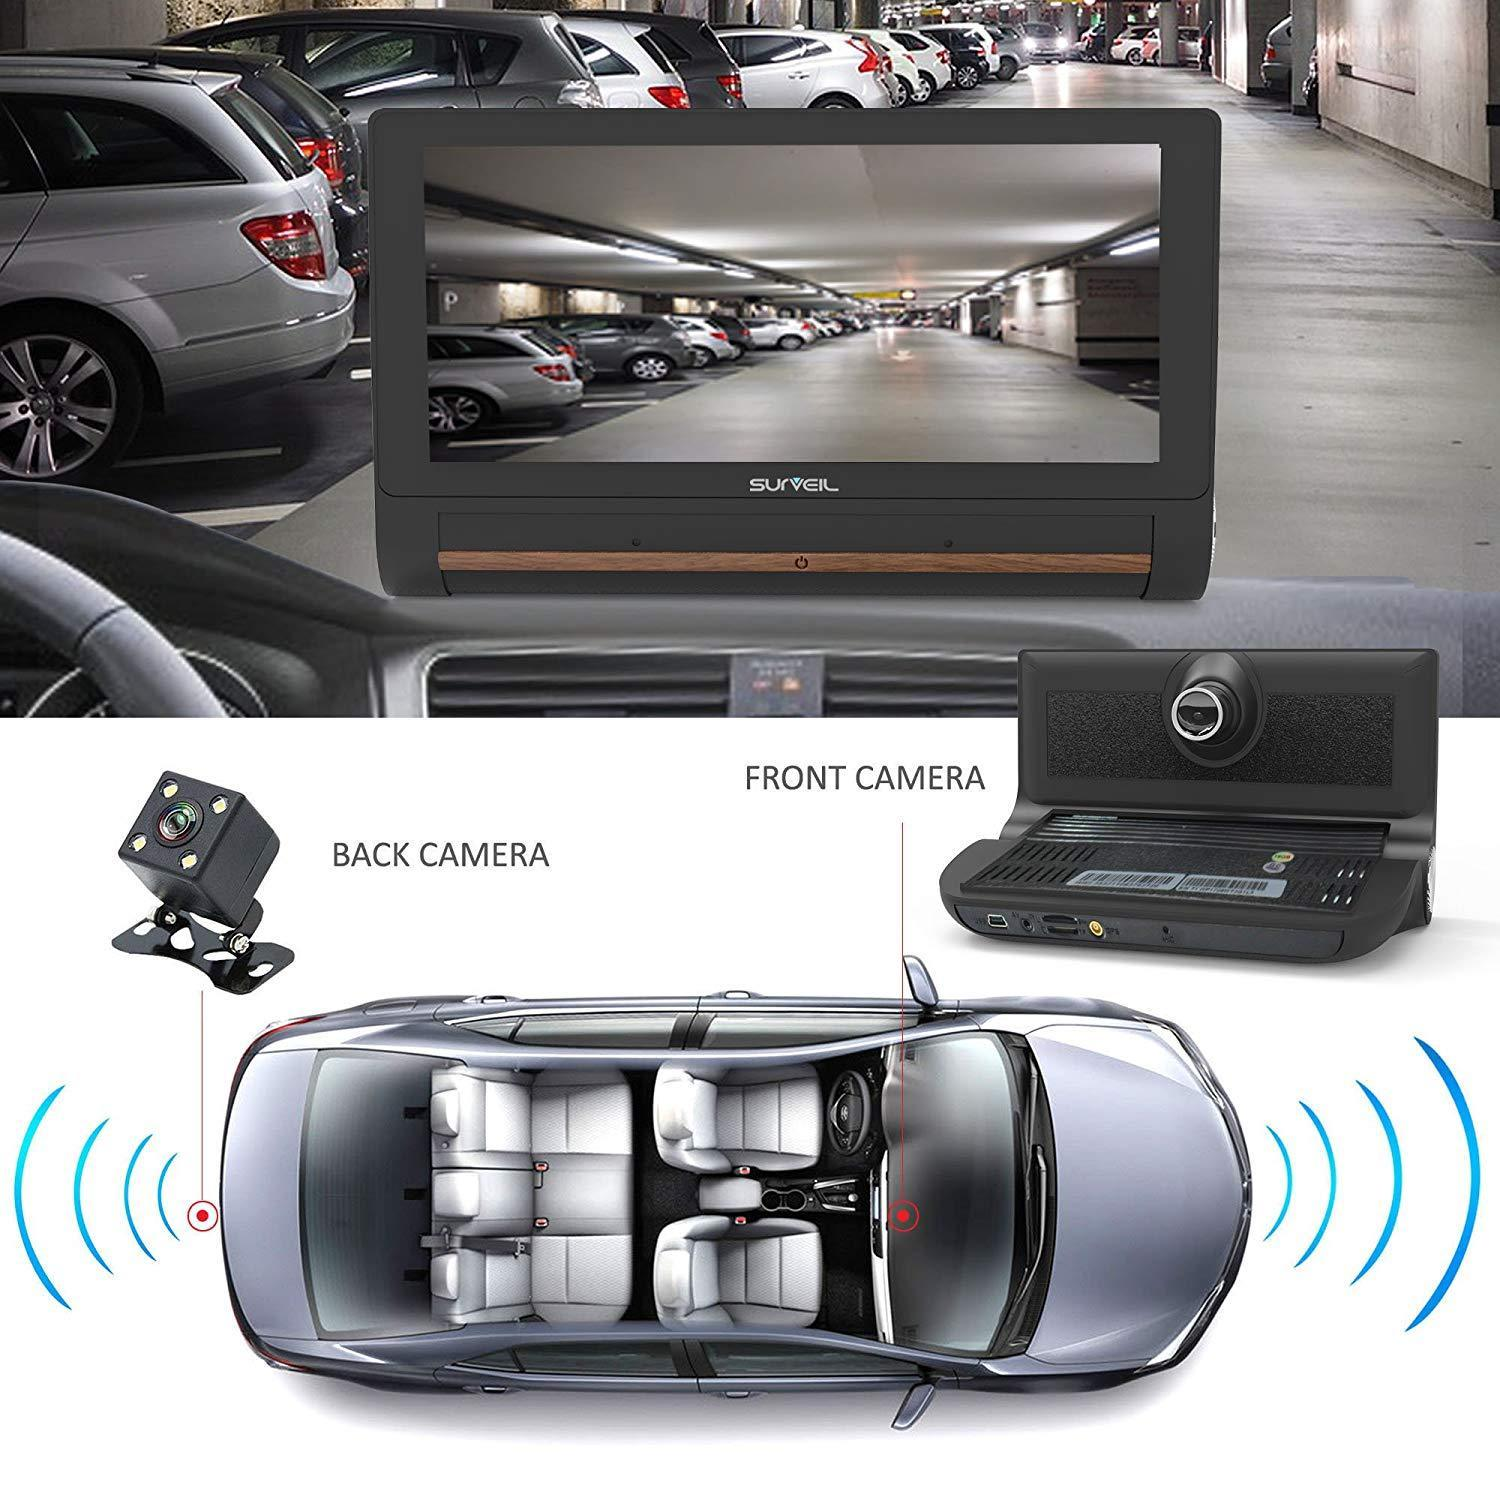 Pyle DVR Dash Cam Rear View Camera Monitor System,  WIFI/Bluetooth, 7'' Touchscreen Display, (PLDVRCAMAND75)